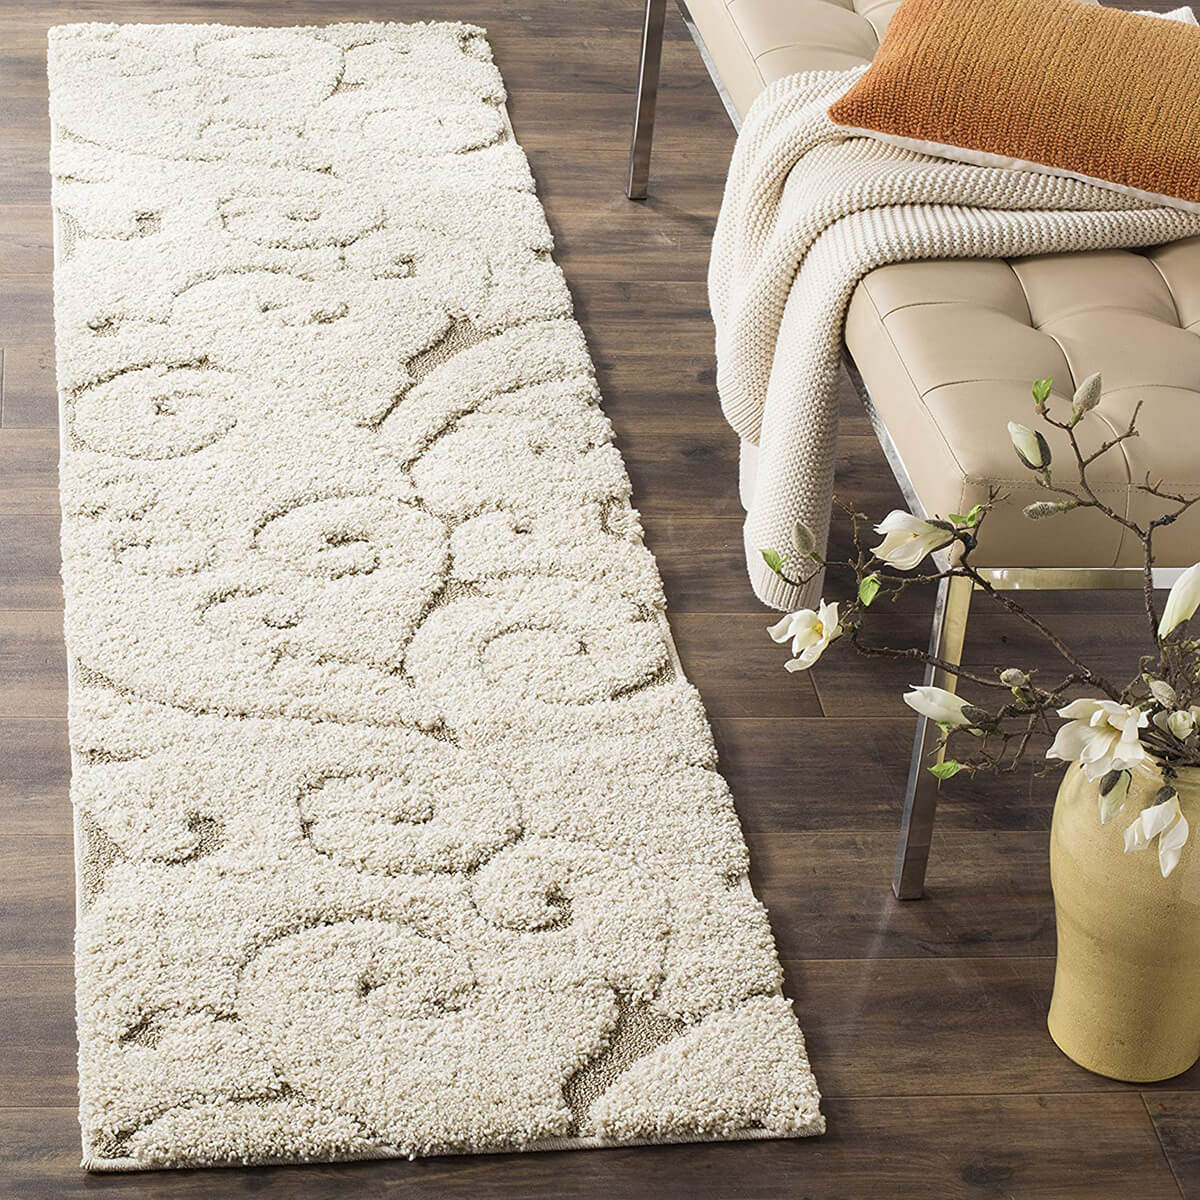 Plush Swirled Patterned Long Rug